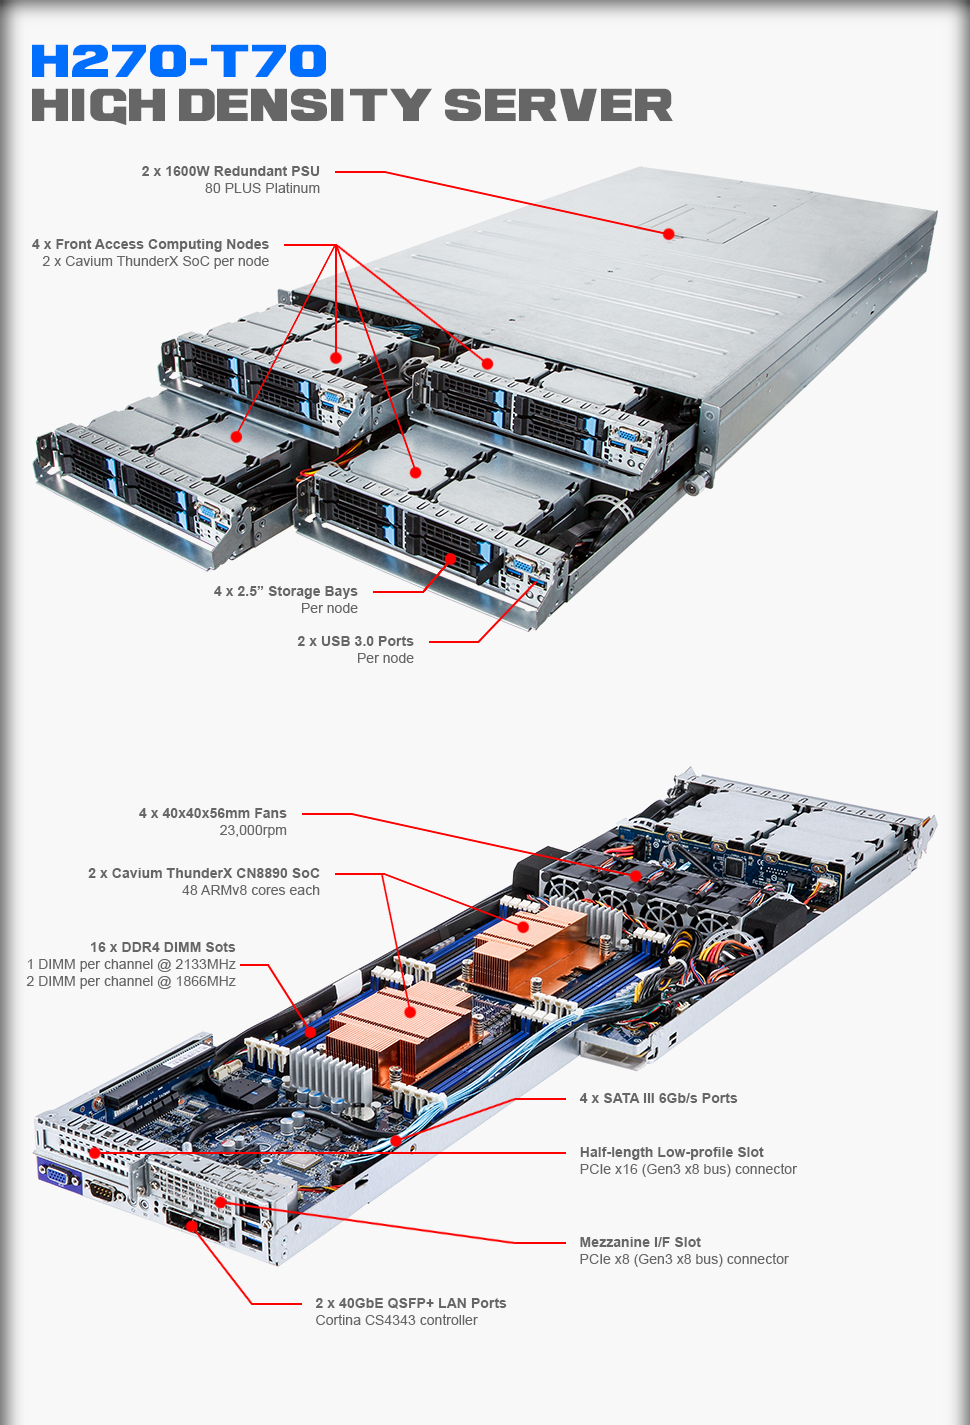 H270-T70 Overview